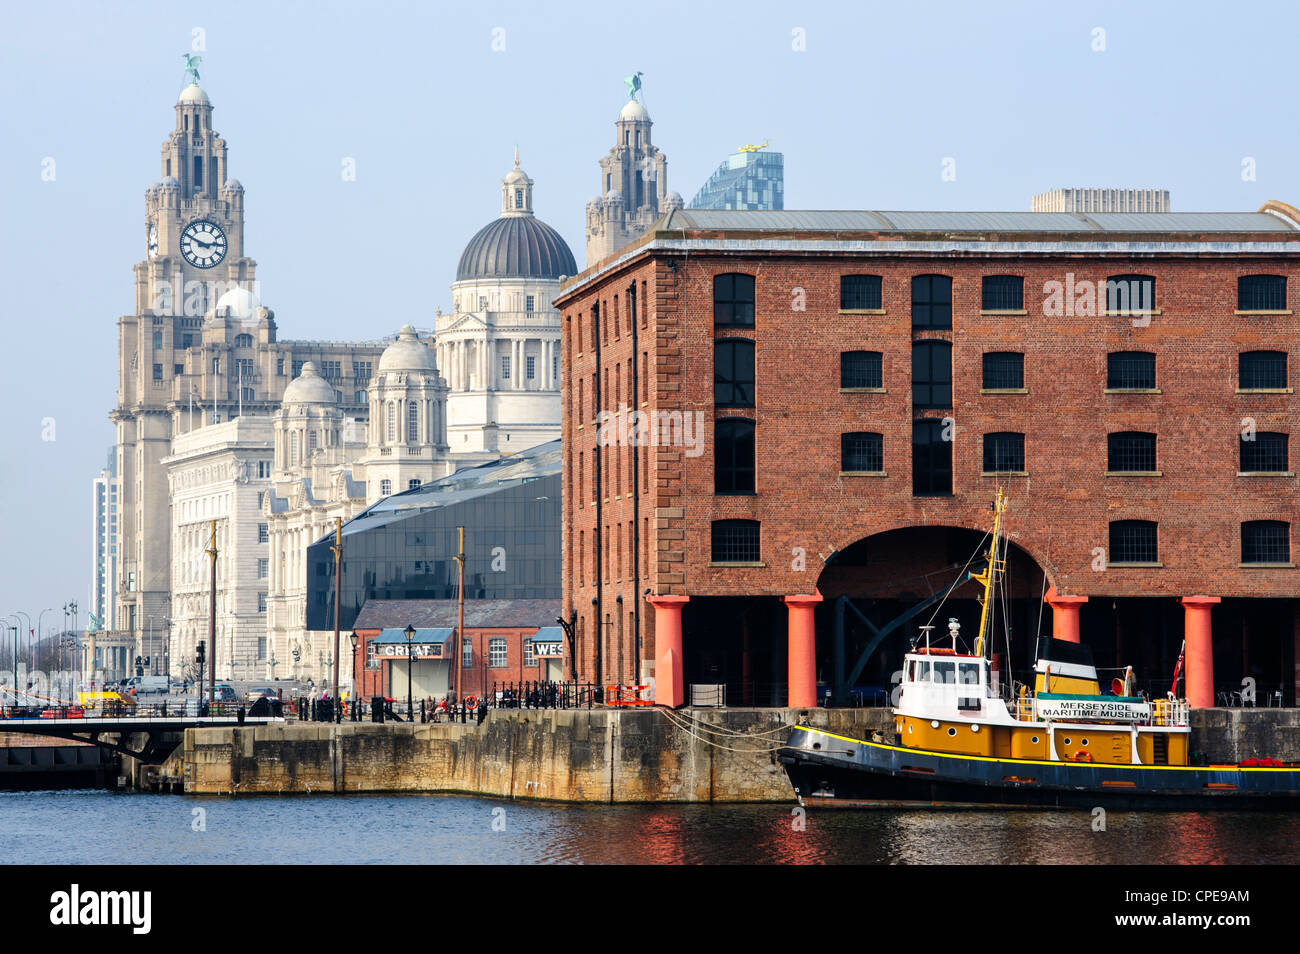 Royal Liver Building and Albert Docks, UNESCO World Heritage Site, Liverpool, Merseyside, England, United Kingdom, - Stock Image